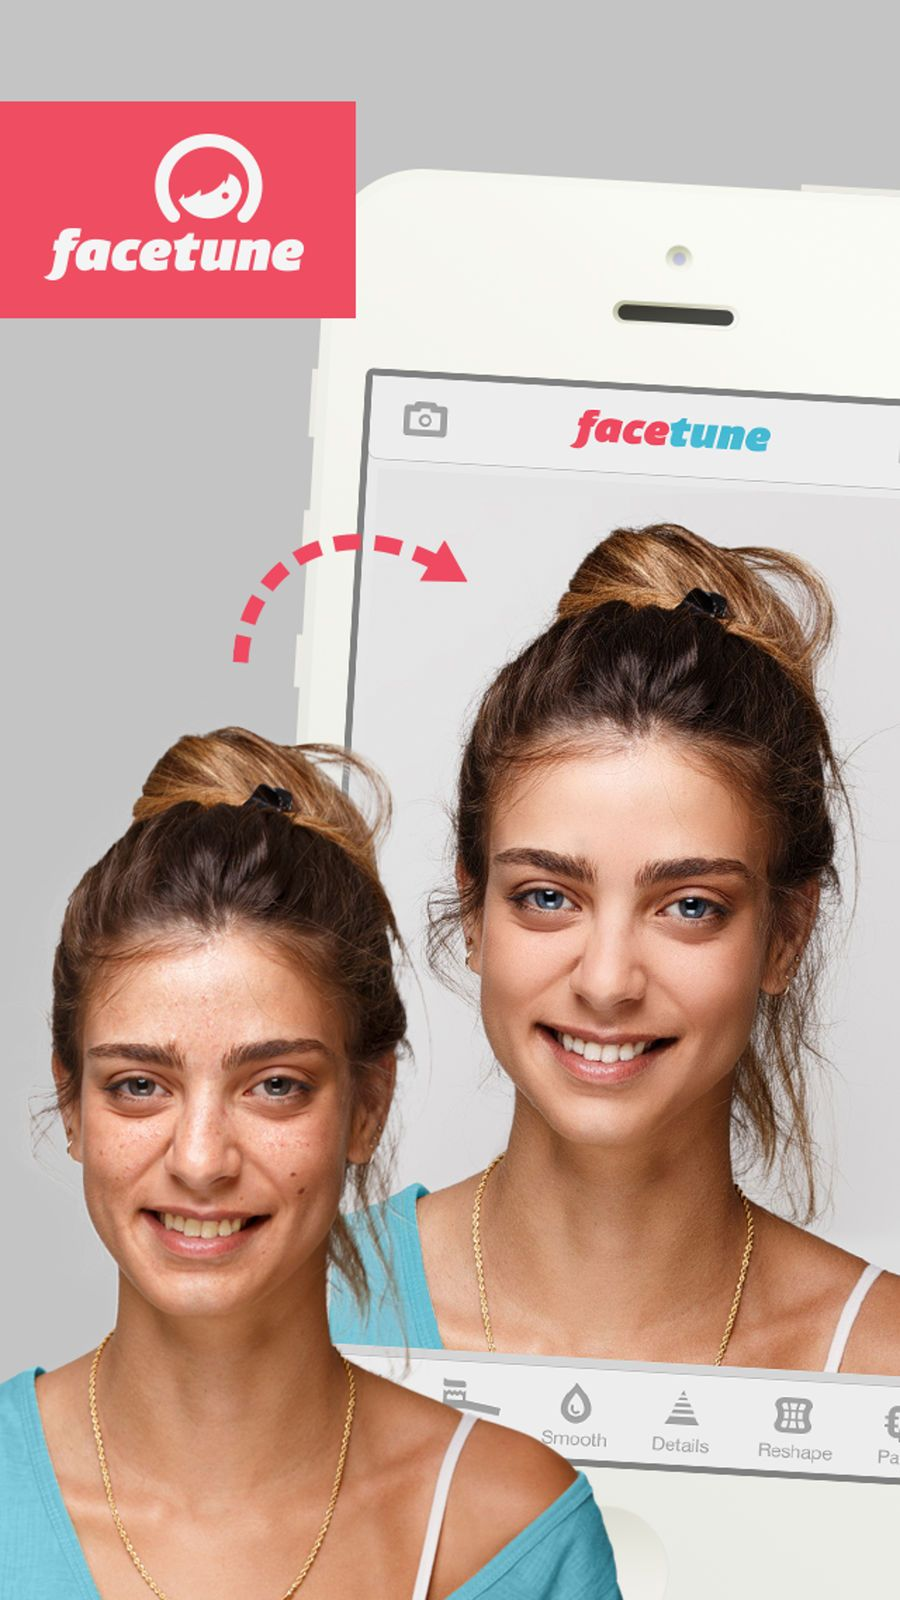 Facetune #Lifestyle#Video#apps#ios | Apple Game Plays | Good photo